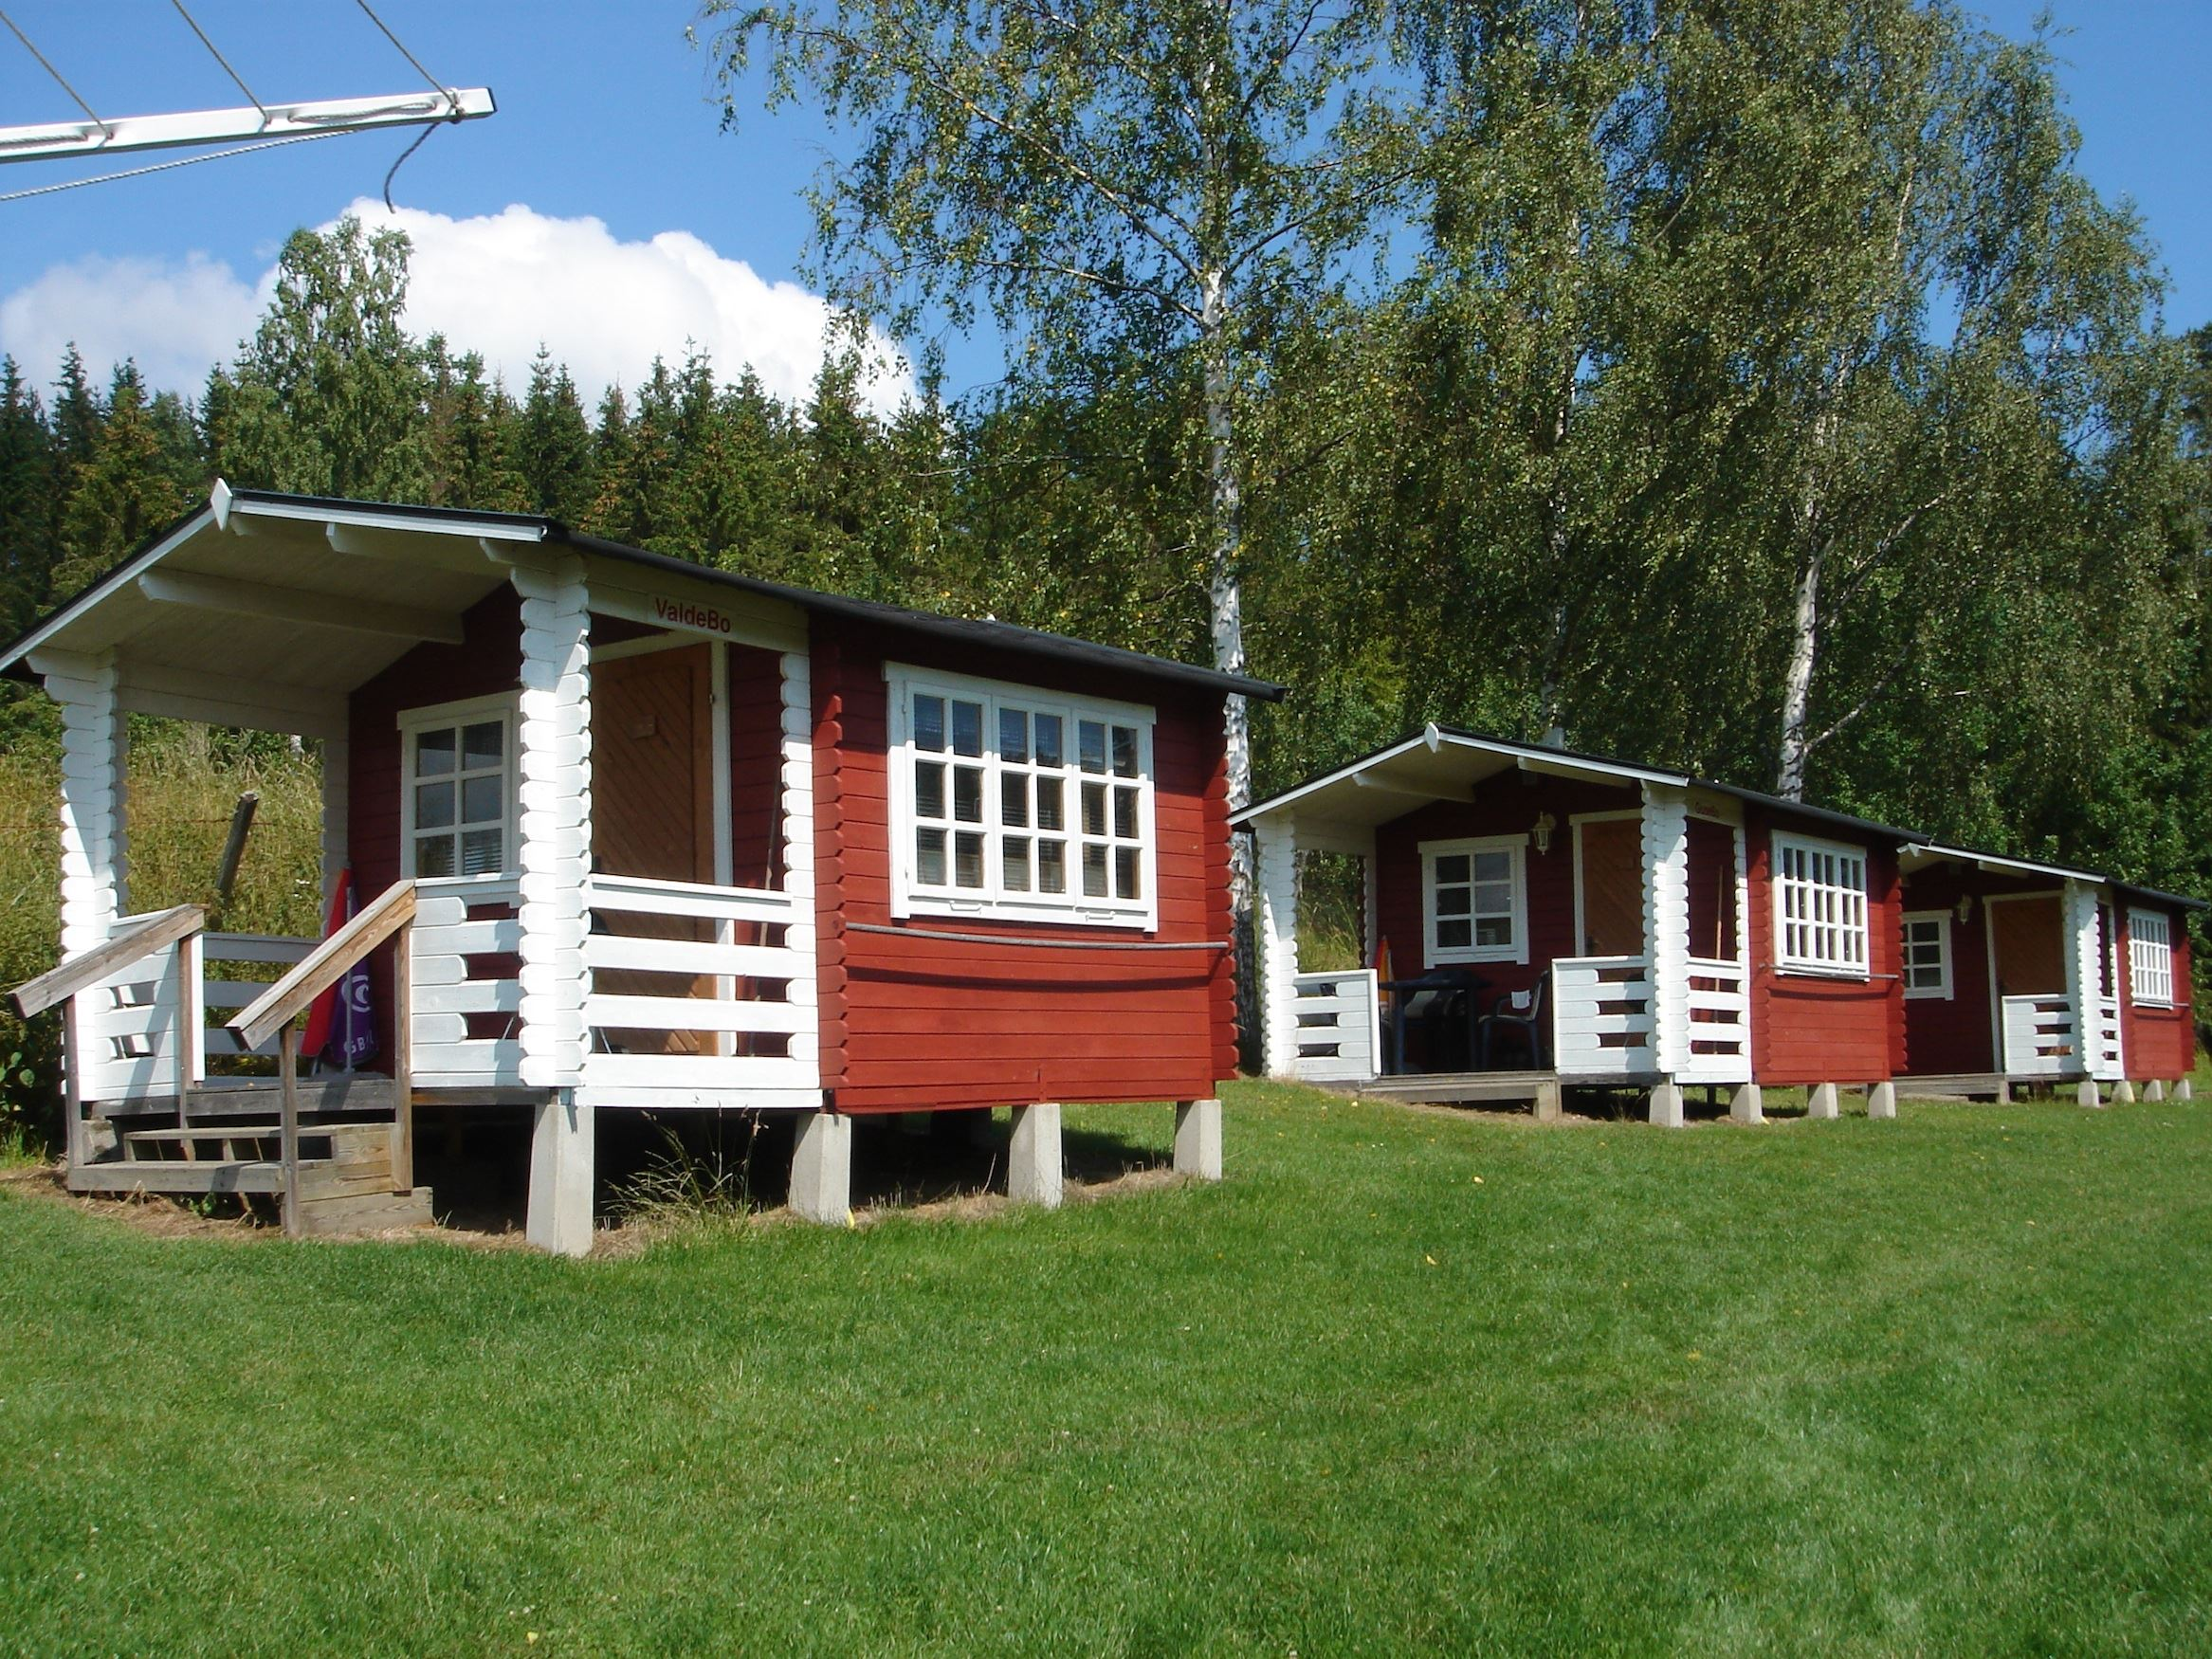 Yxningens Camping/Cottages